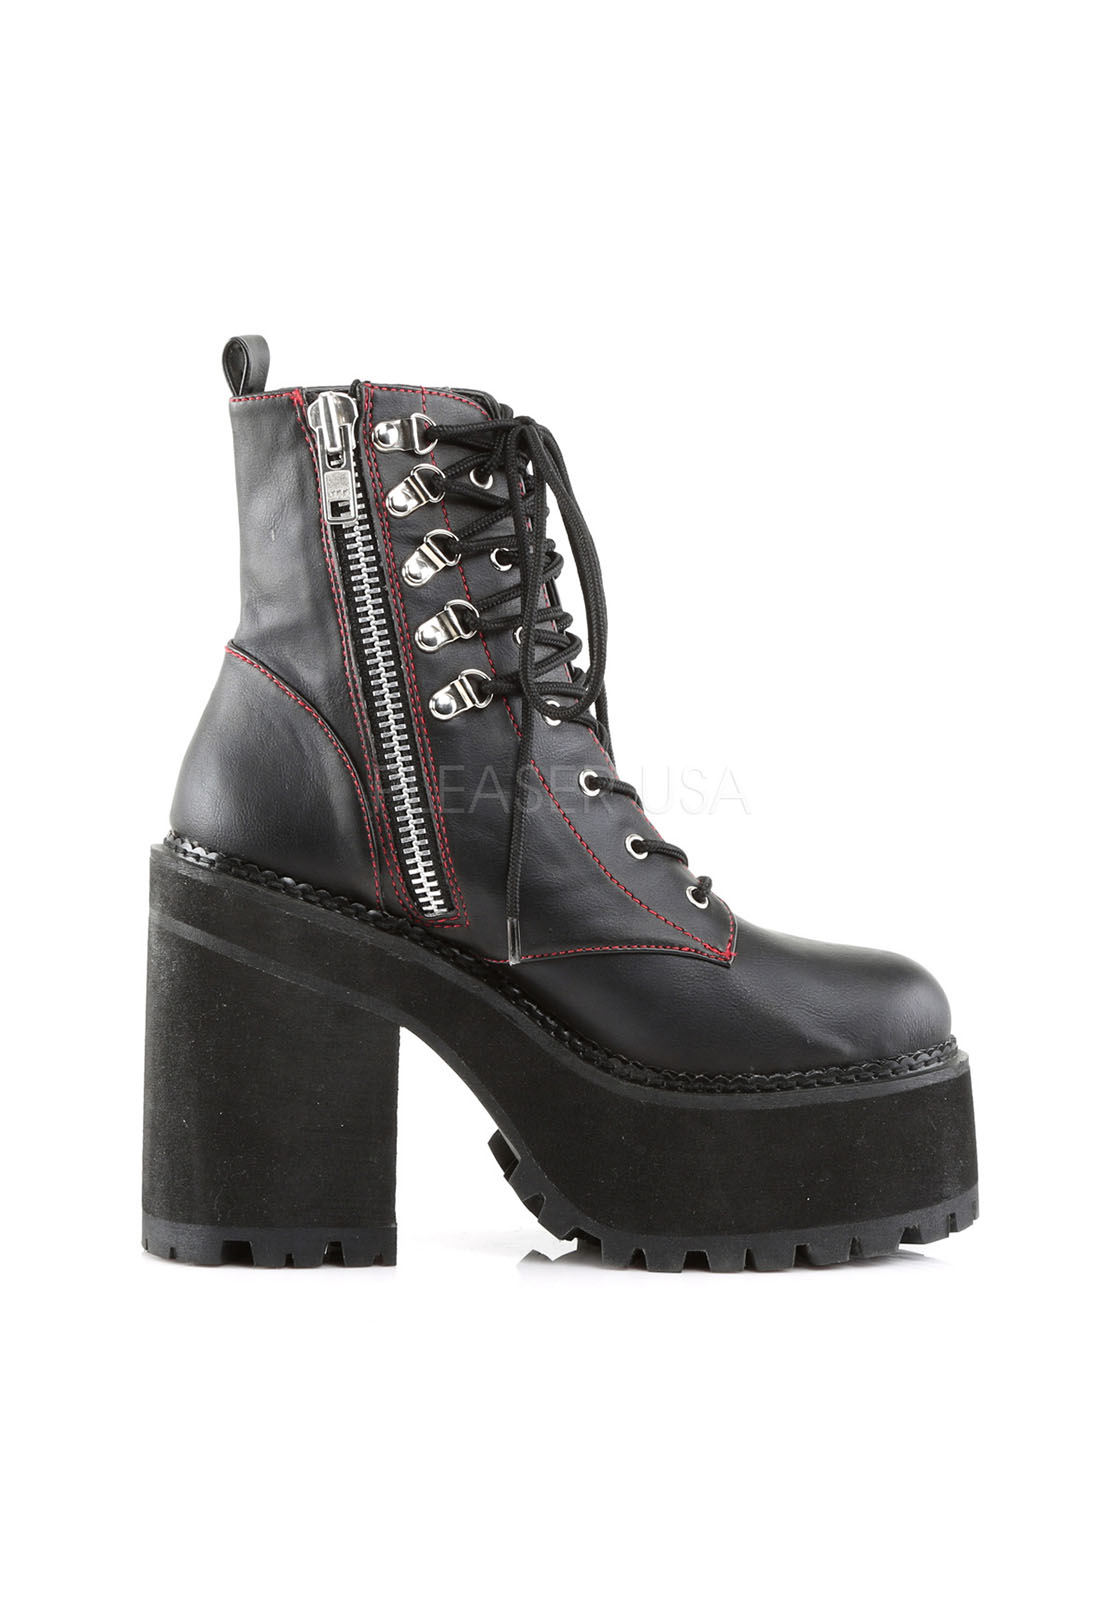 Demonia ASSAULT-100 D-Ring Lace-Up Ankle Boot, Side Zip